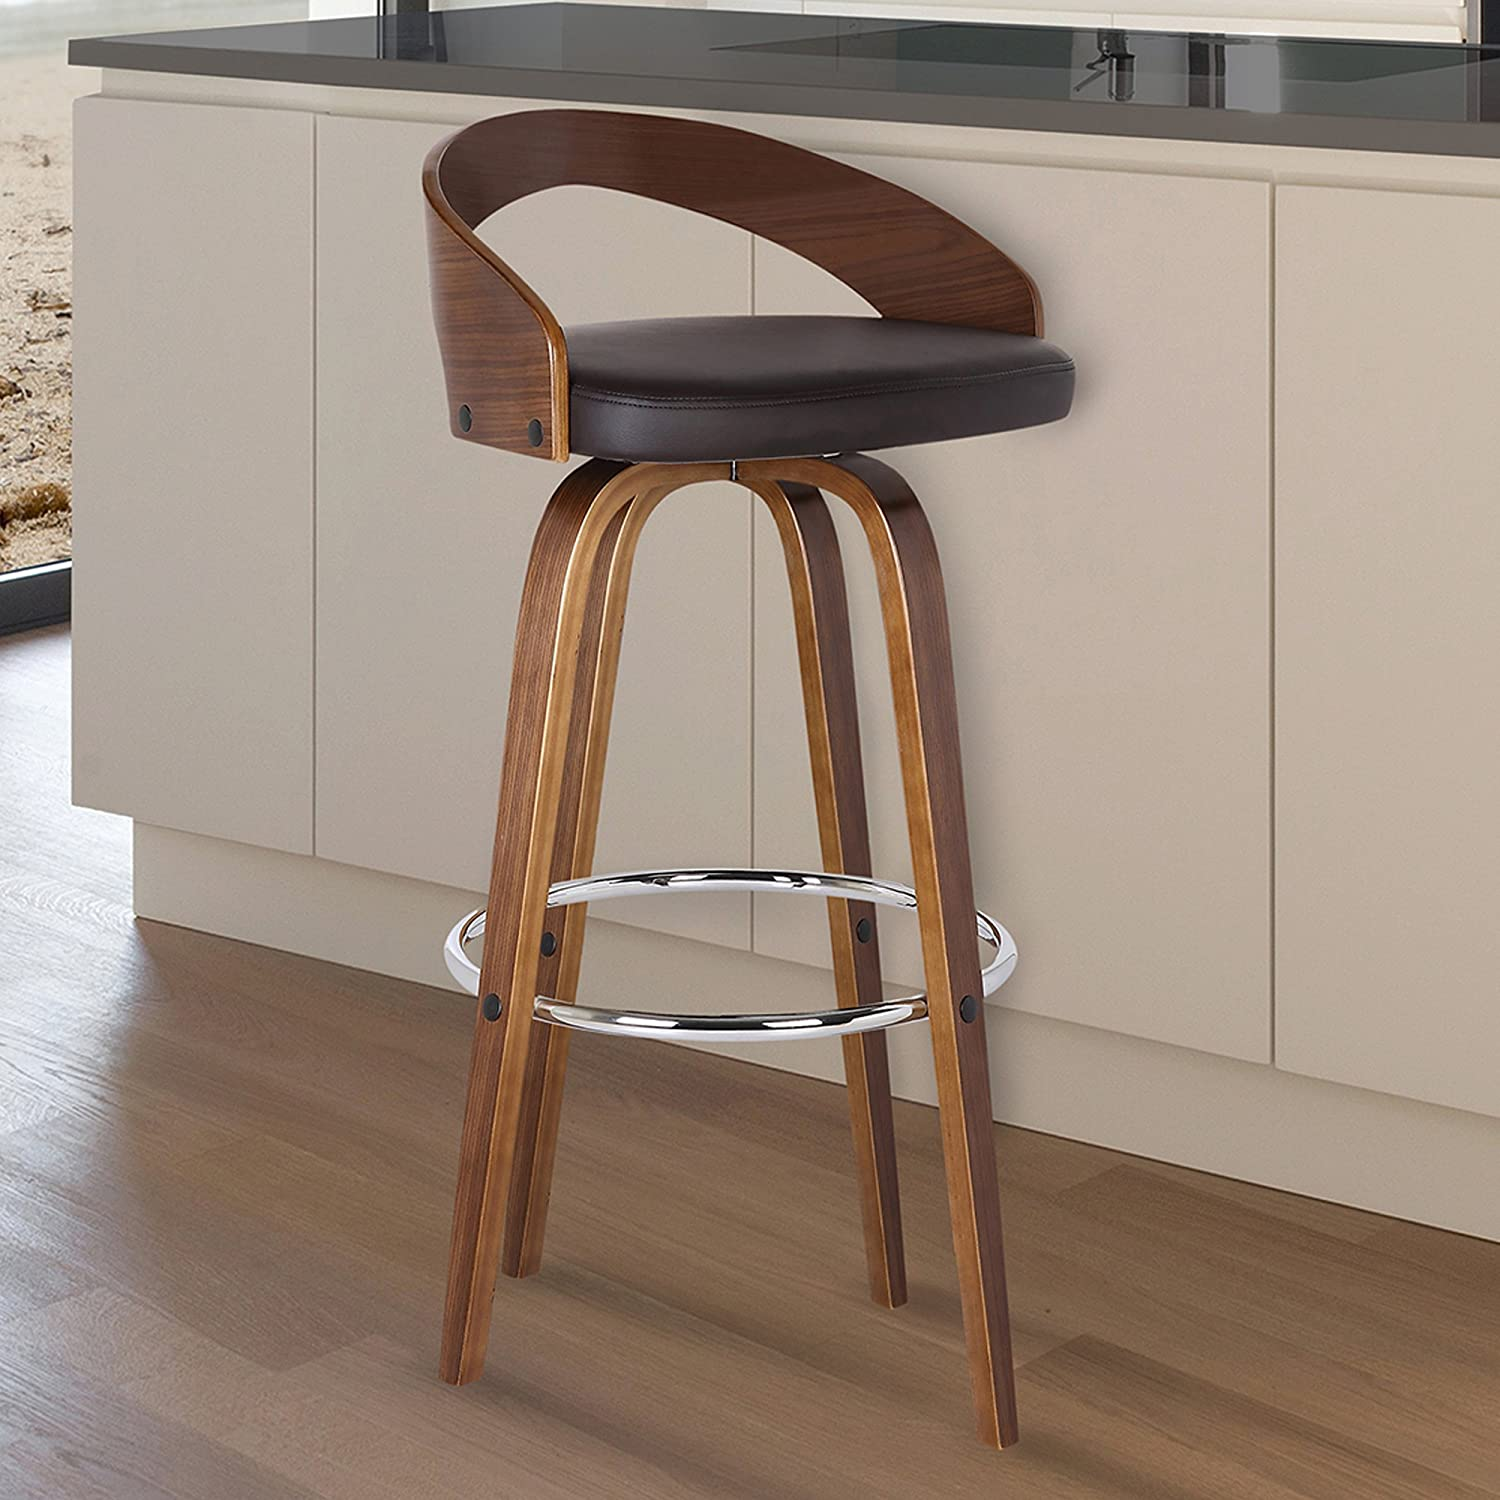 "Armen Living LCSOBABRWA26 Sonia 26"" Counter Height Barstool in Brown Faux Leather and Walnut Wood Finish"